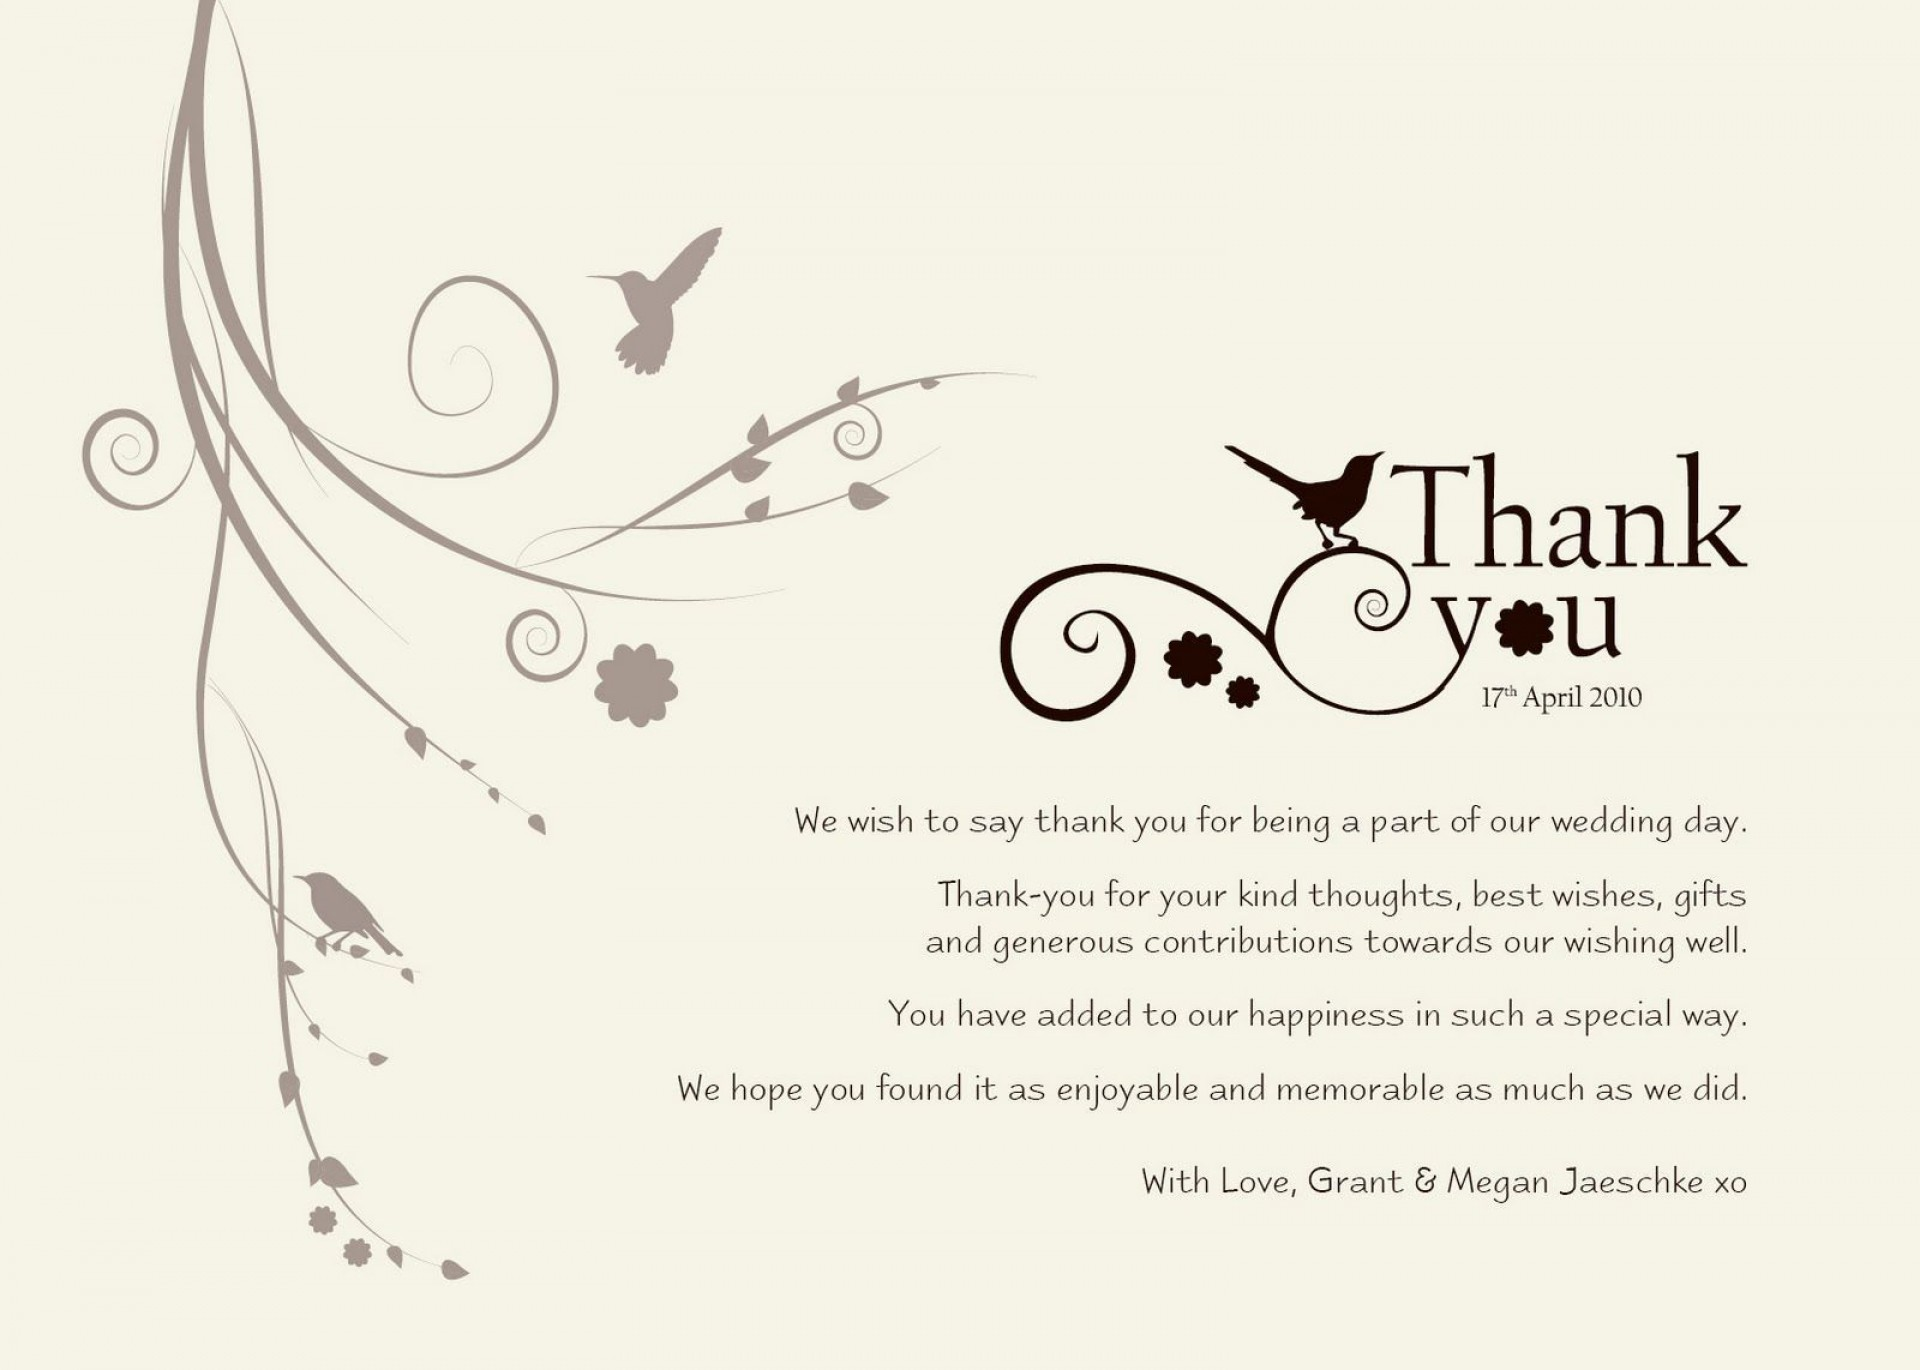 006 Dreaded Thank You Note Format Wedding High Definition  Example Card Wording Not Attending Sample For Gift1920